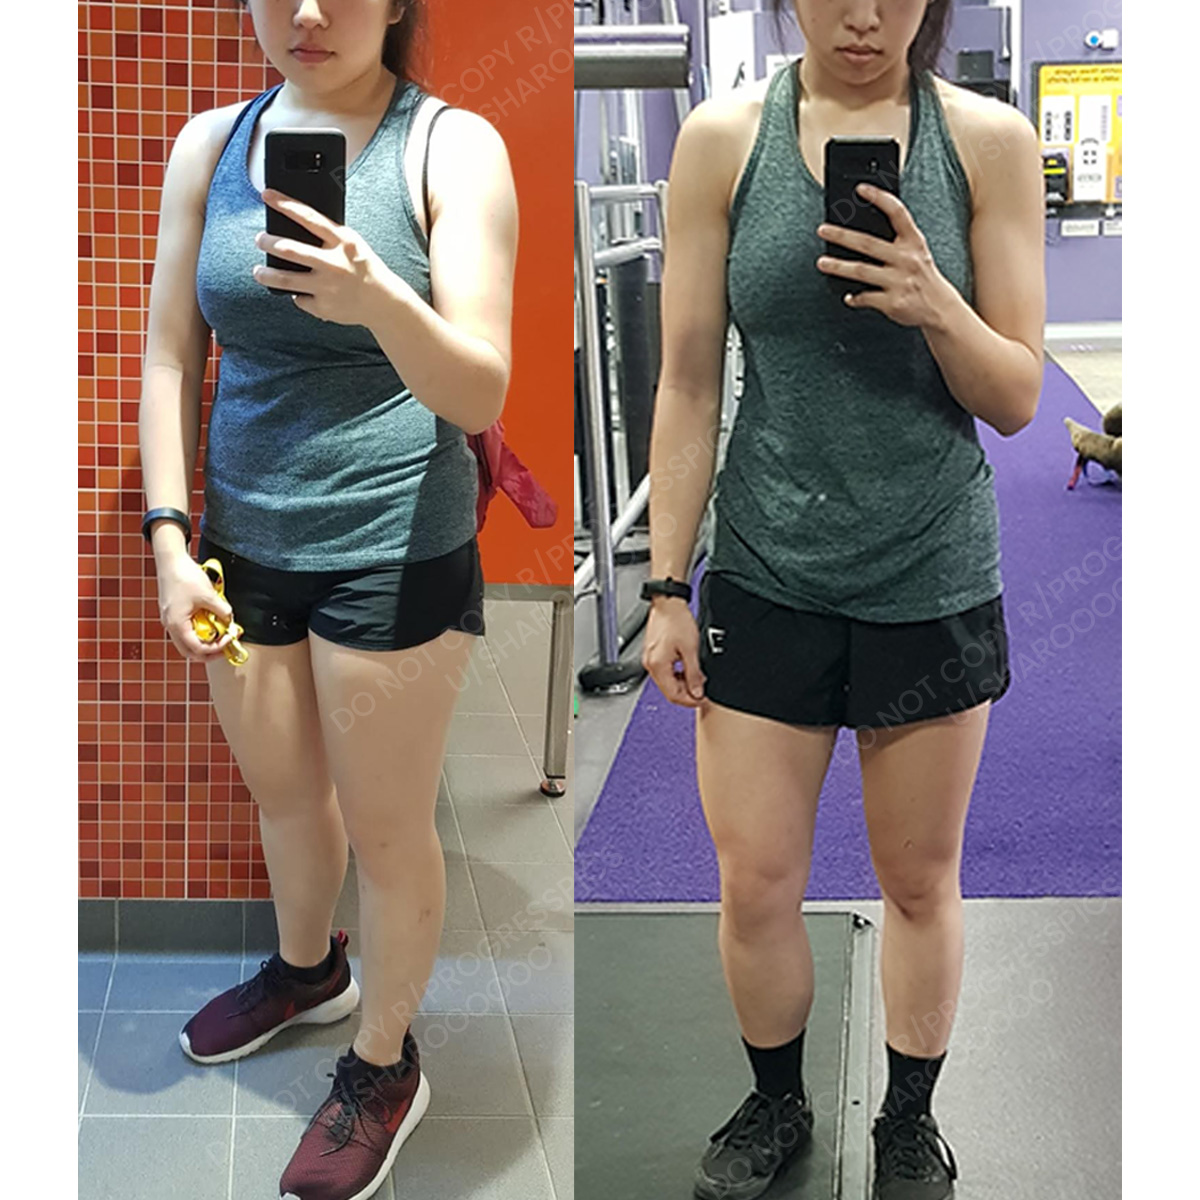 16 lbs Weight Loss Before and After 5 foot 1 Female 137 lbs to 121 lbs